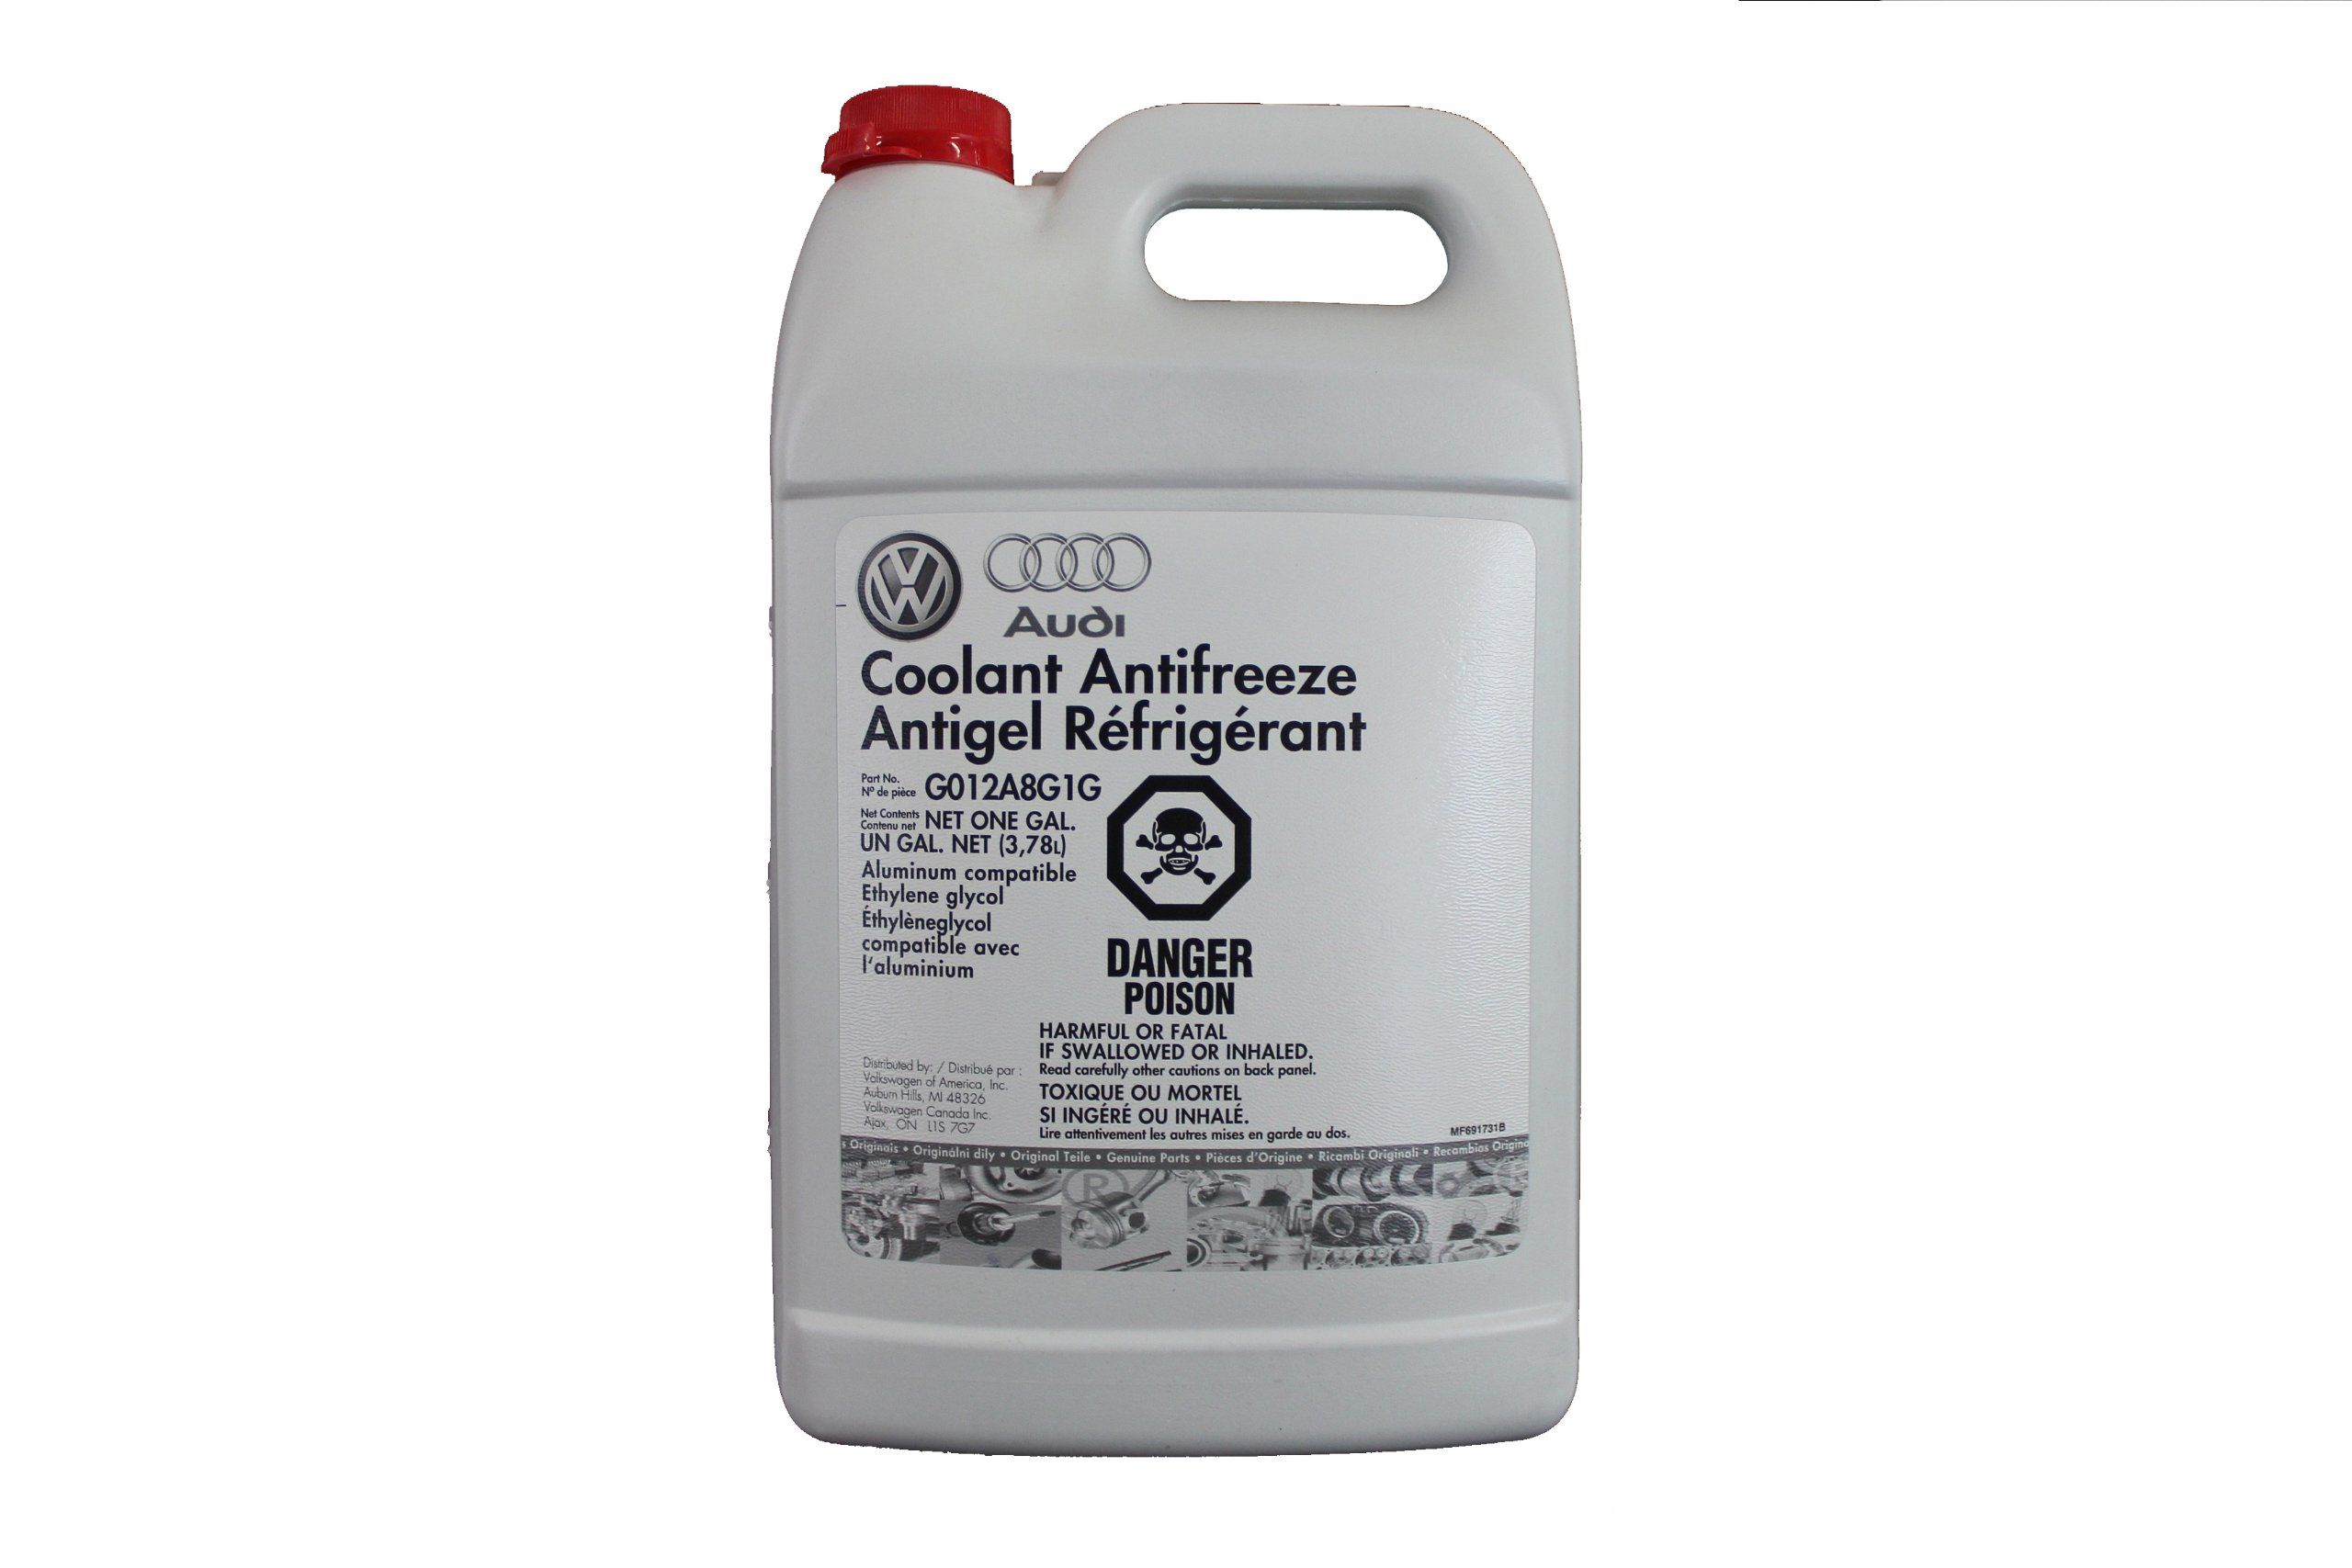 sensor temperature coolant antifreeze replacement htm large extra audi water techarticles image